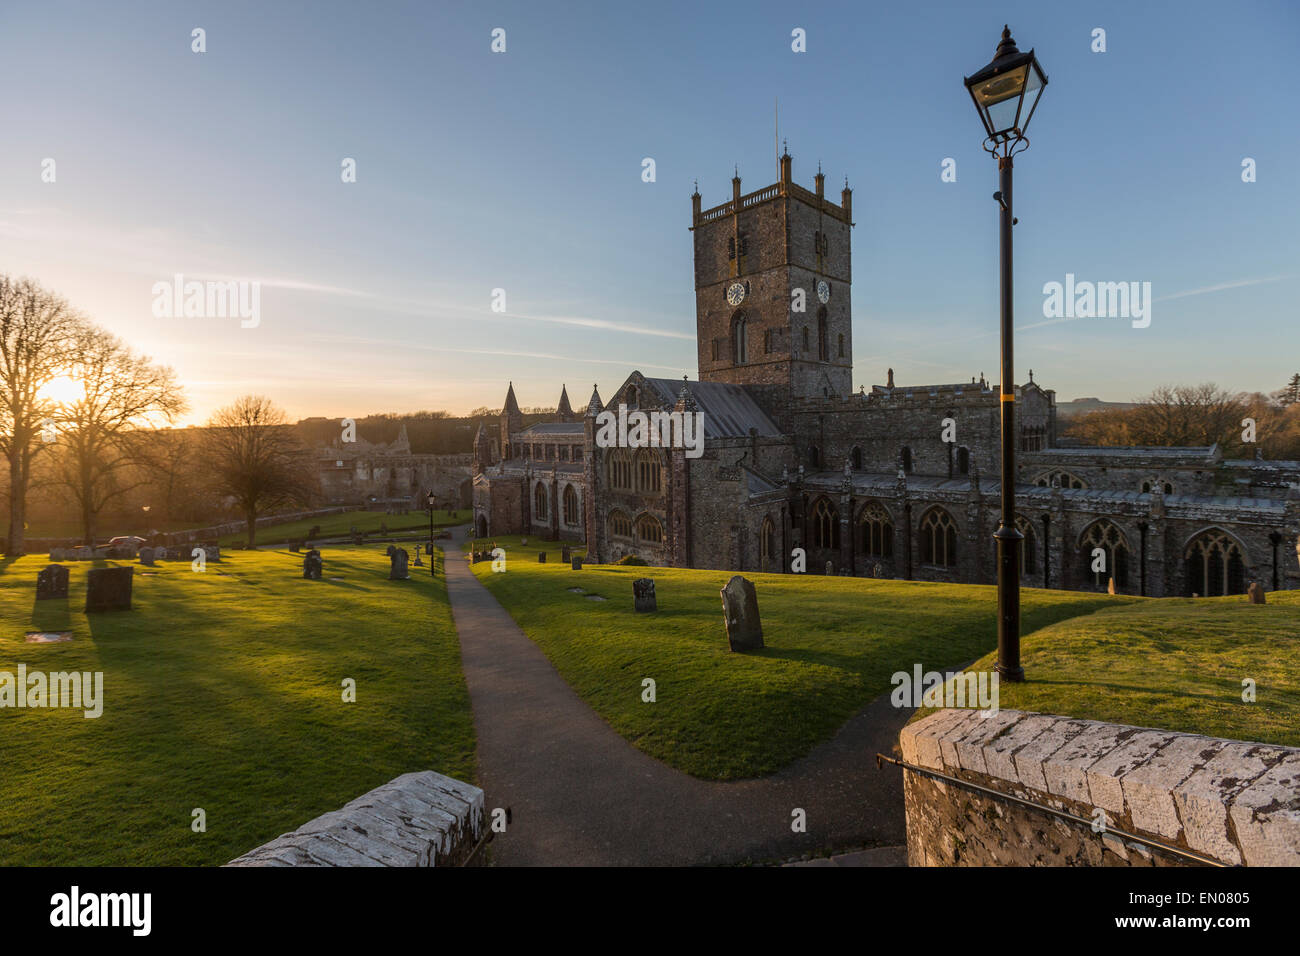 st-davids-cathedral-at-sunset-with-the-g